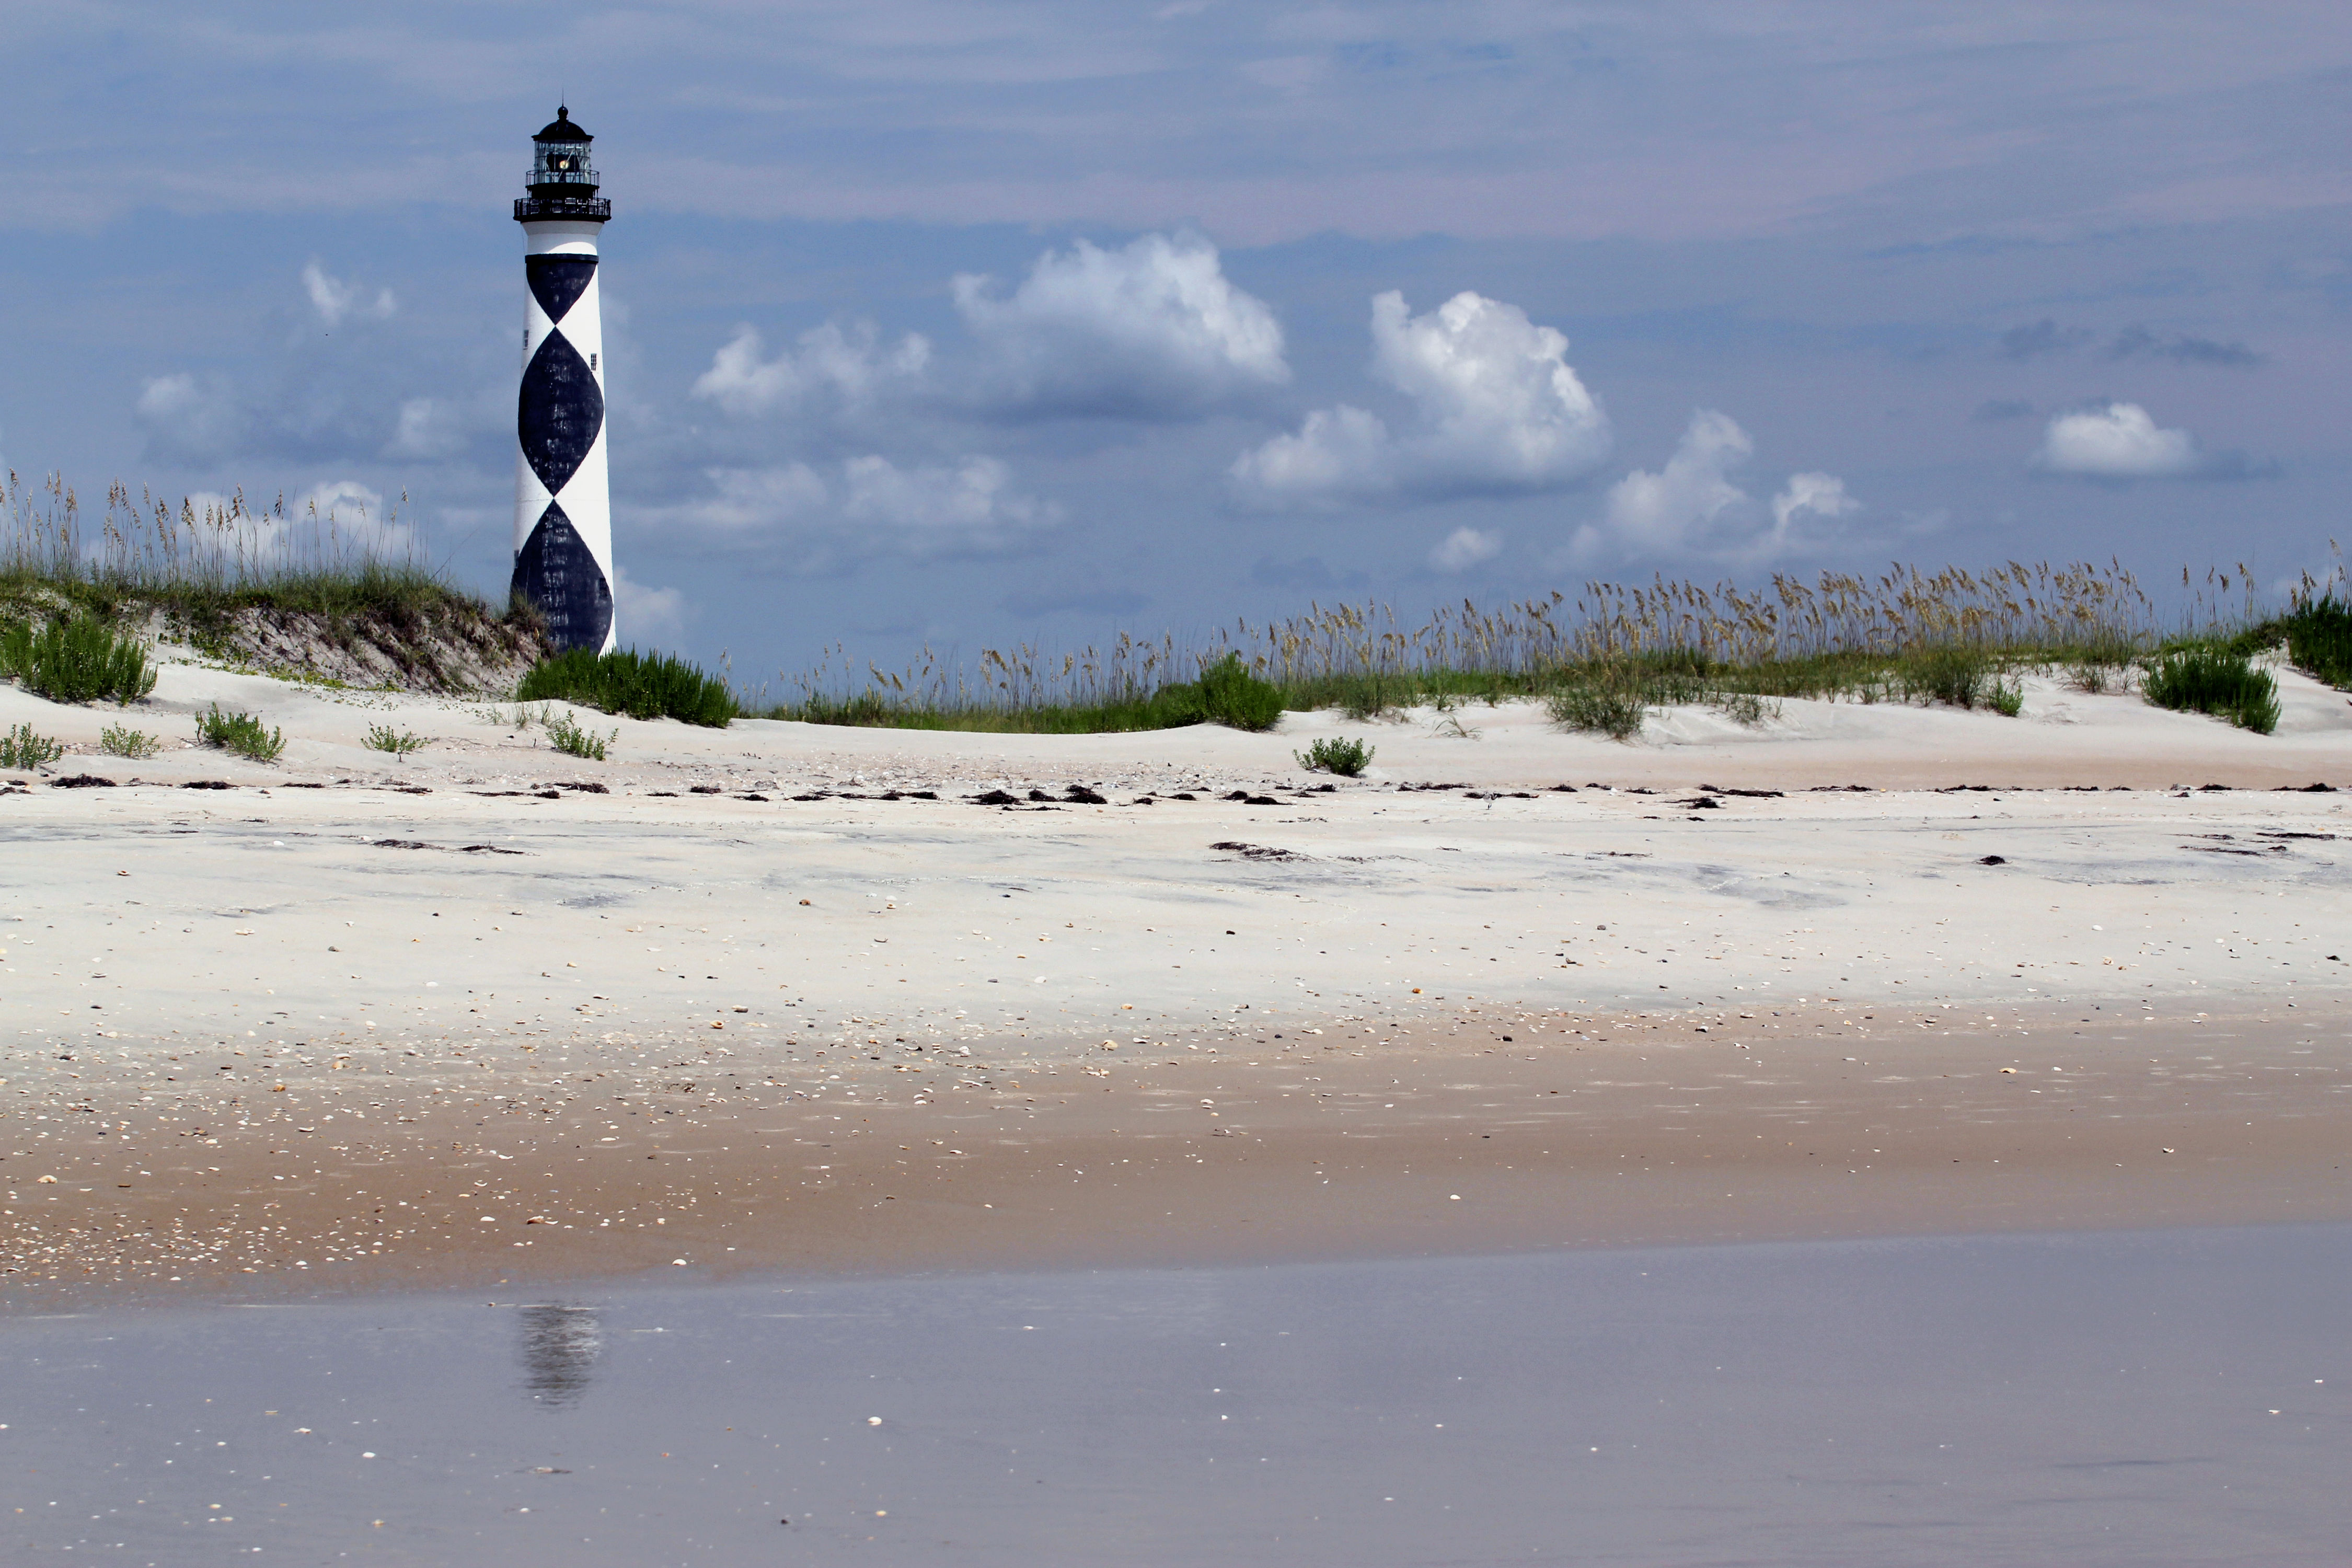 Officials Say Hurricane Dorian Has Changed the Shape of Cape Lookout National Seashore